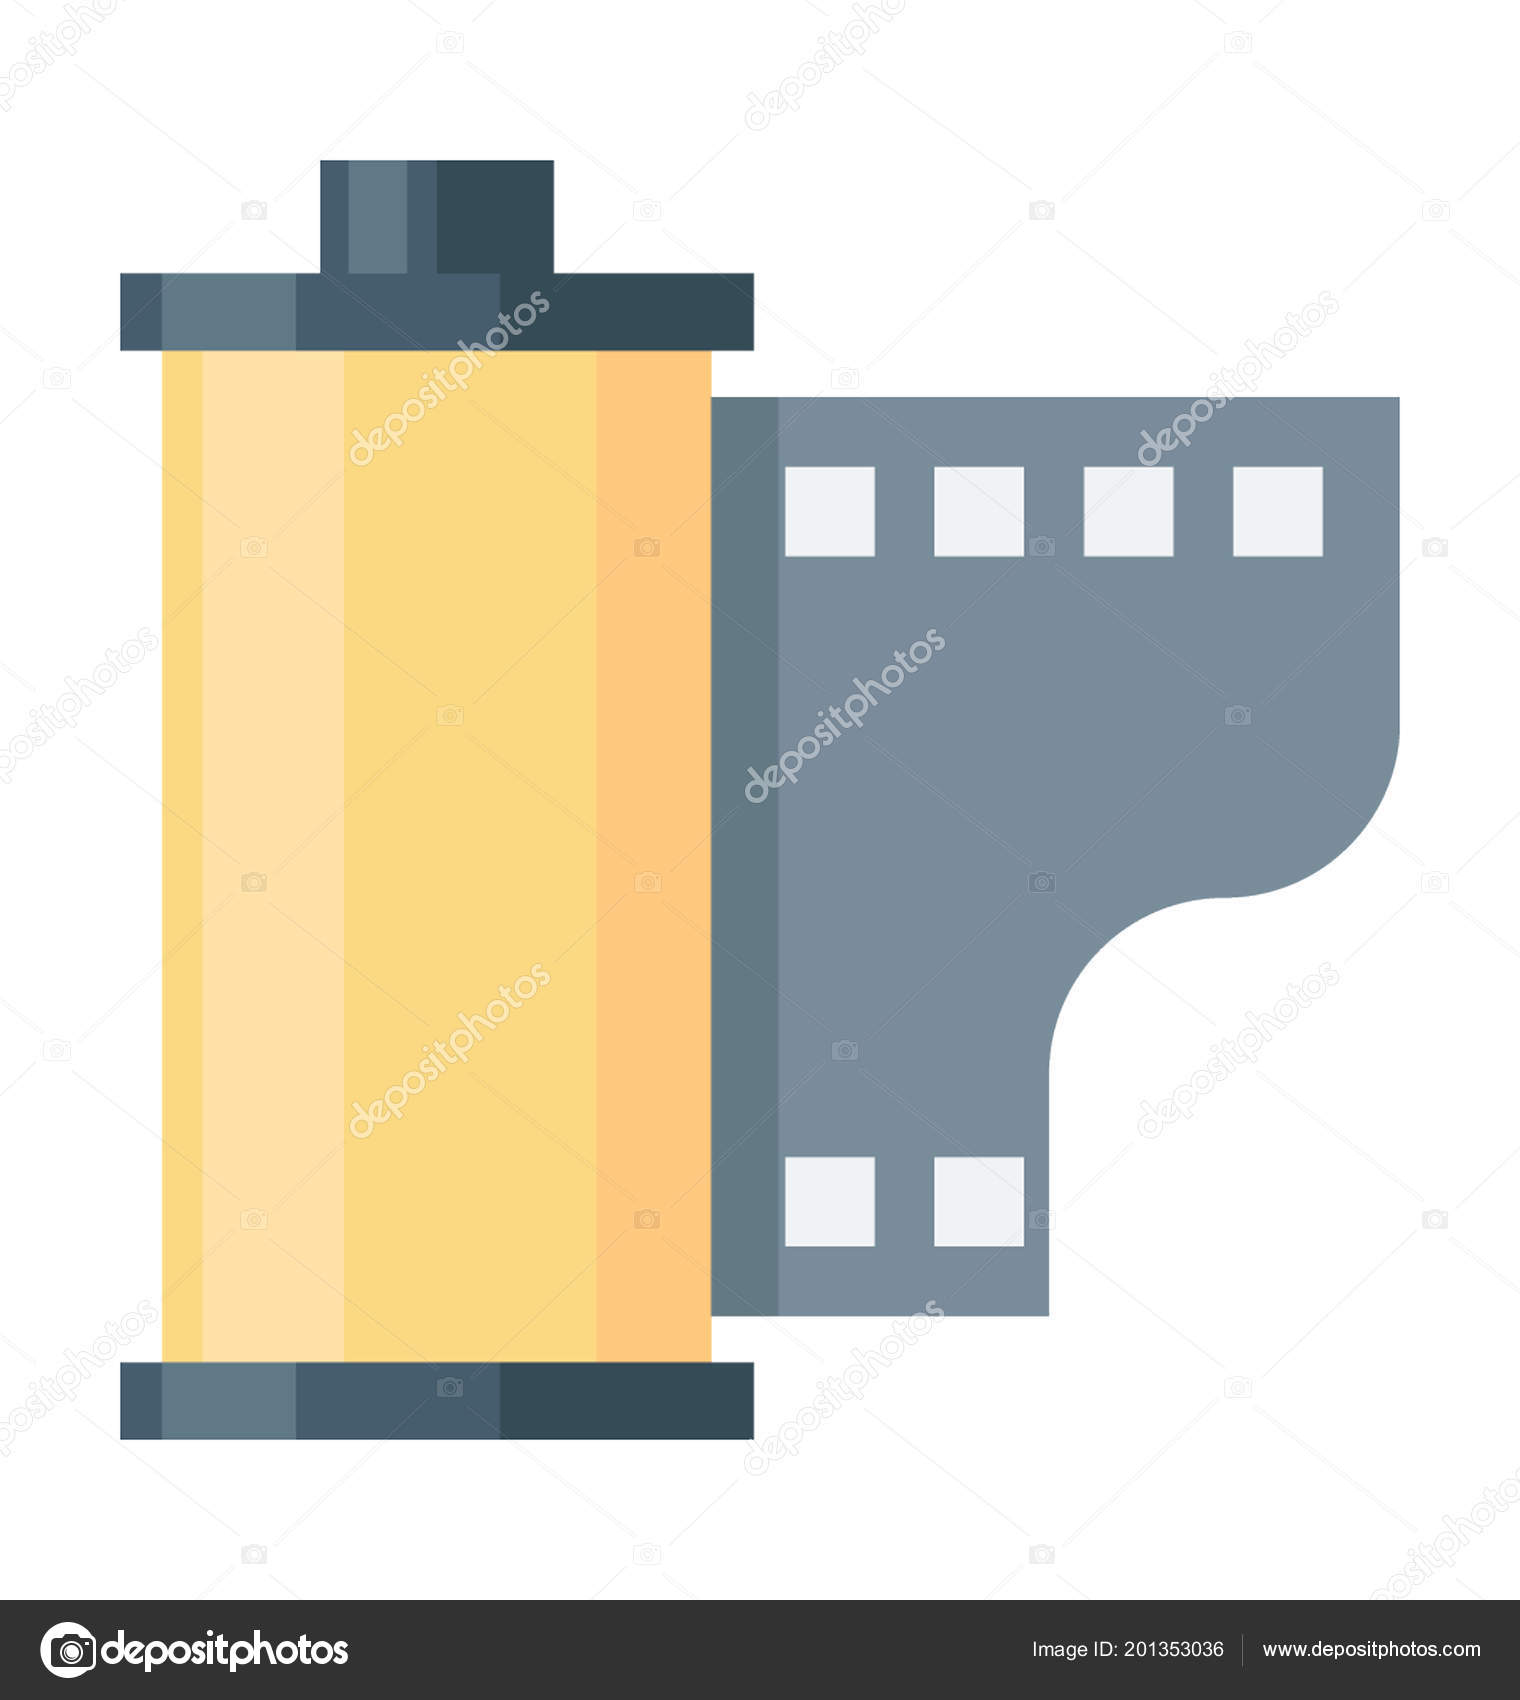 Fire hose fire extinguishers hose reel box fire box png download.